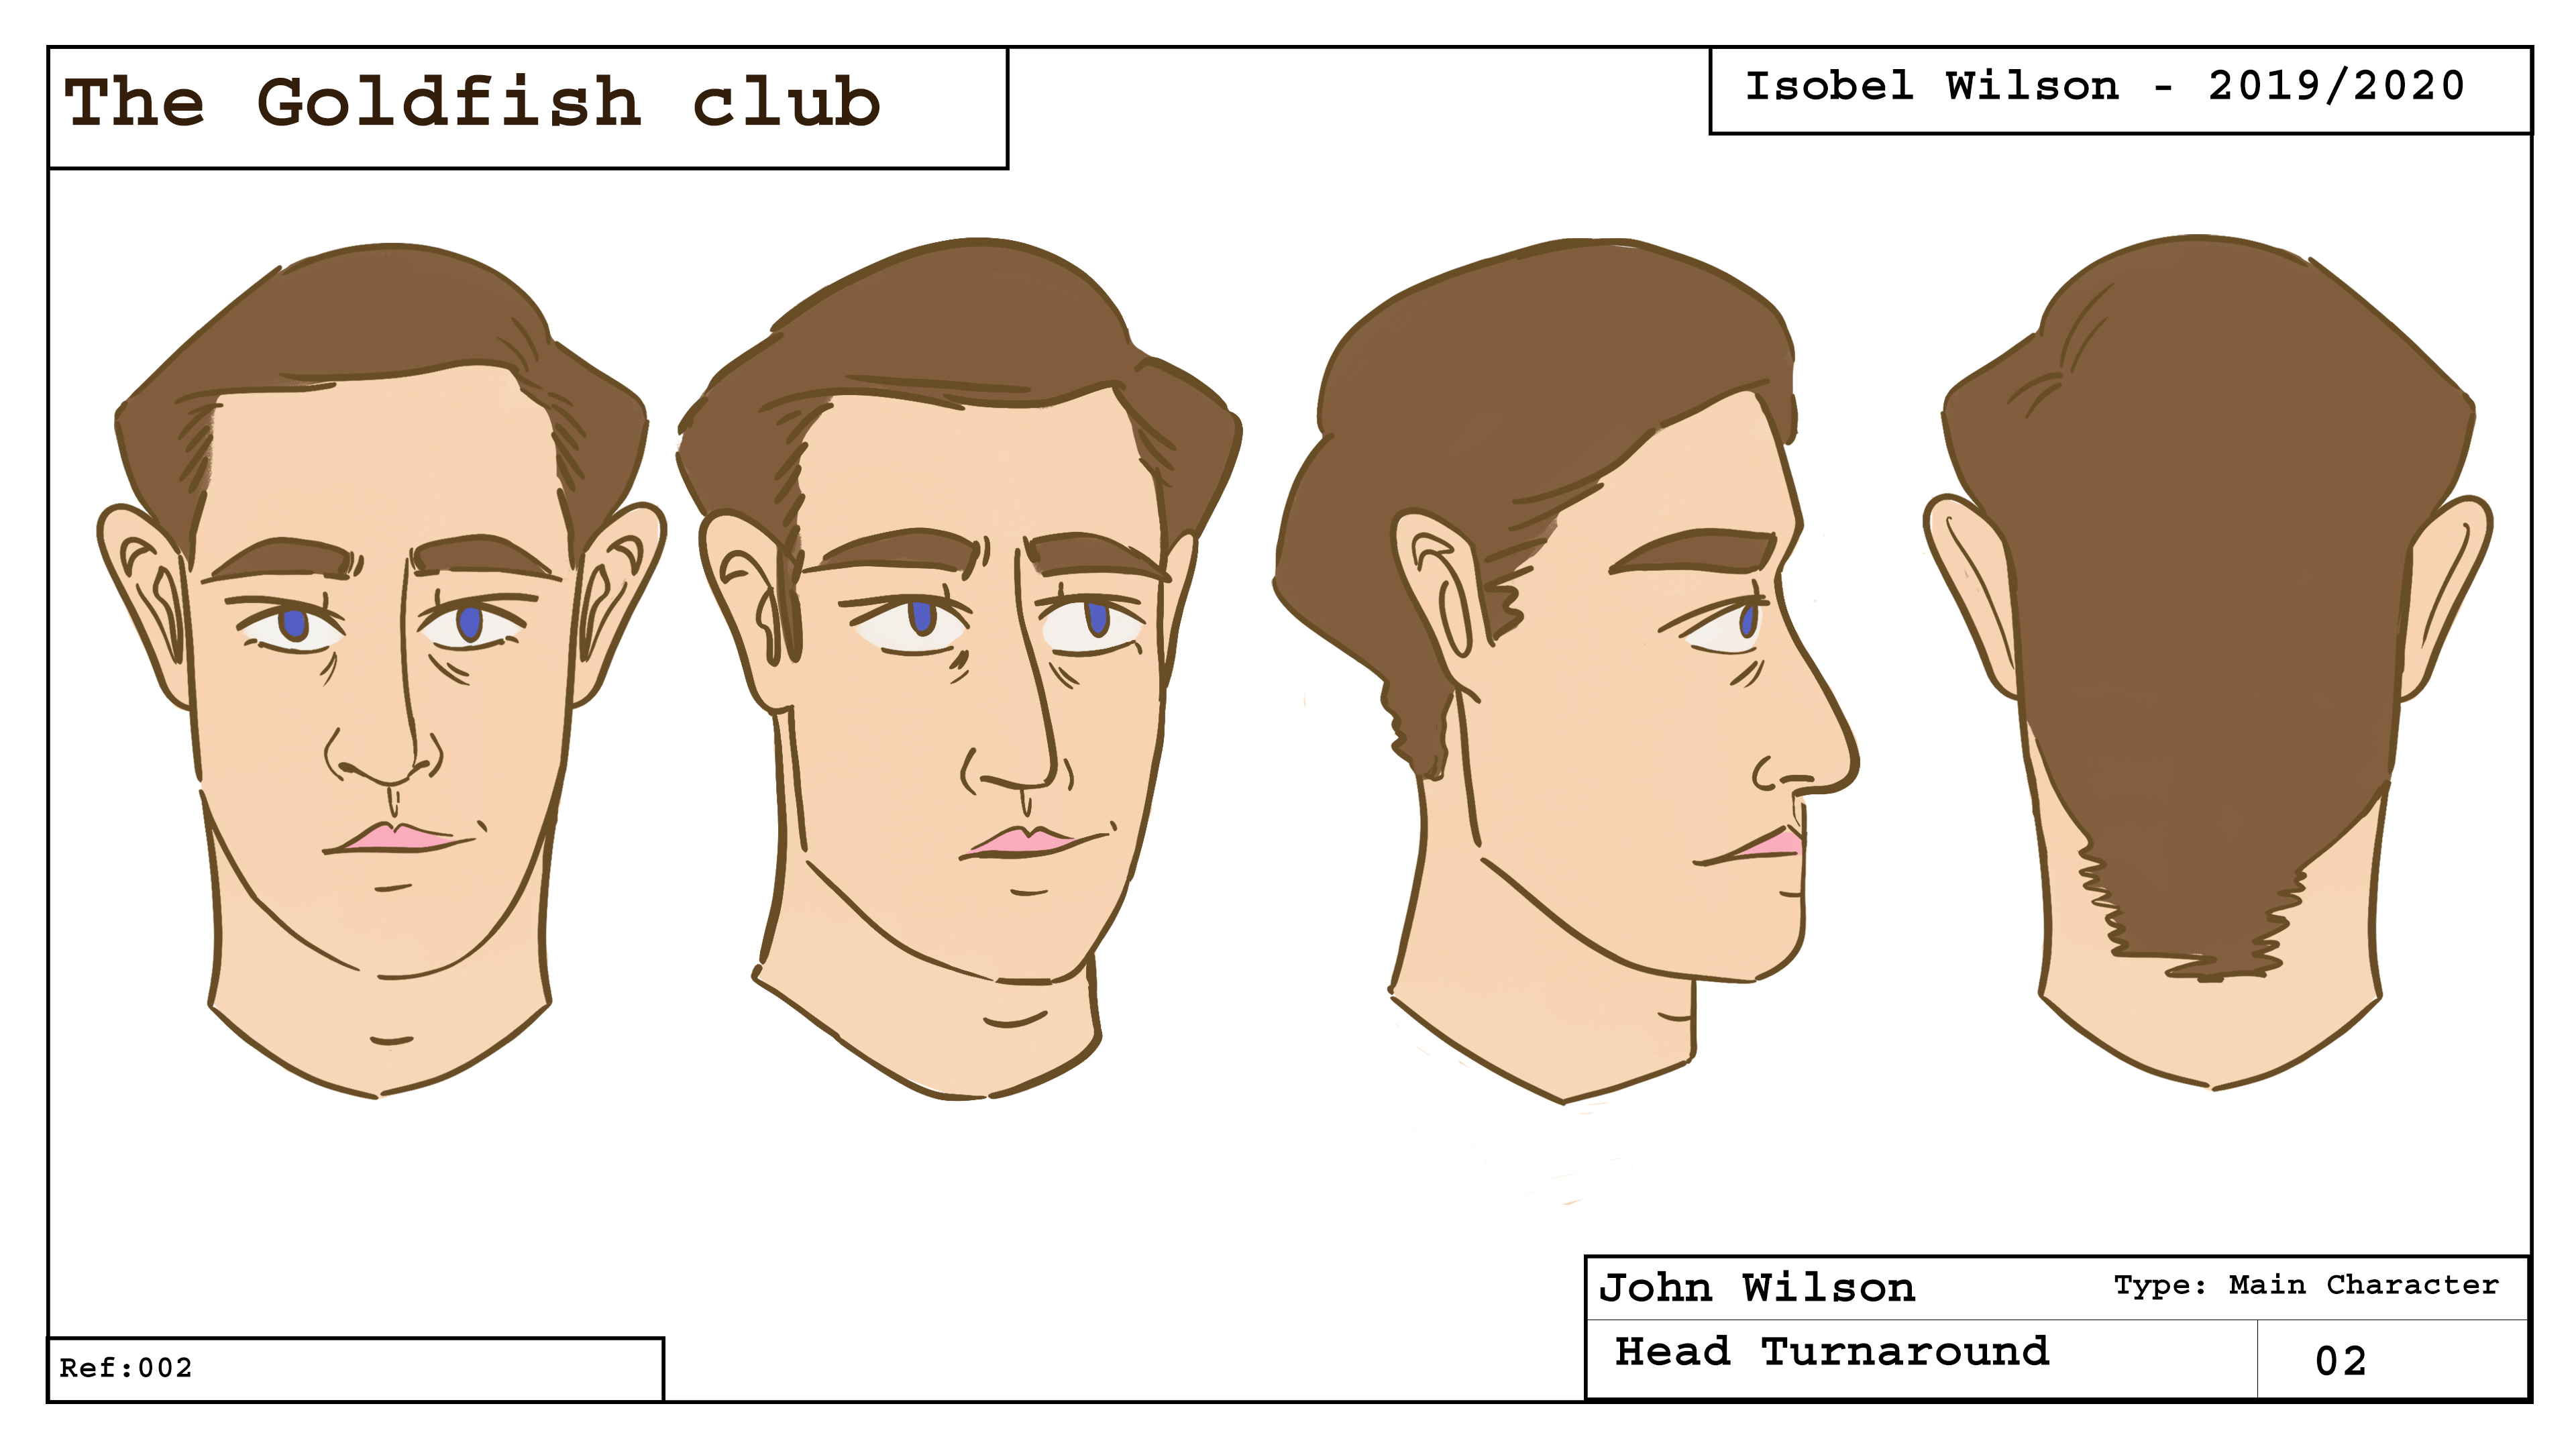 John head turnaround final.jpg